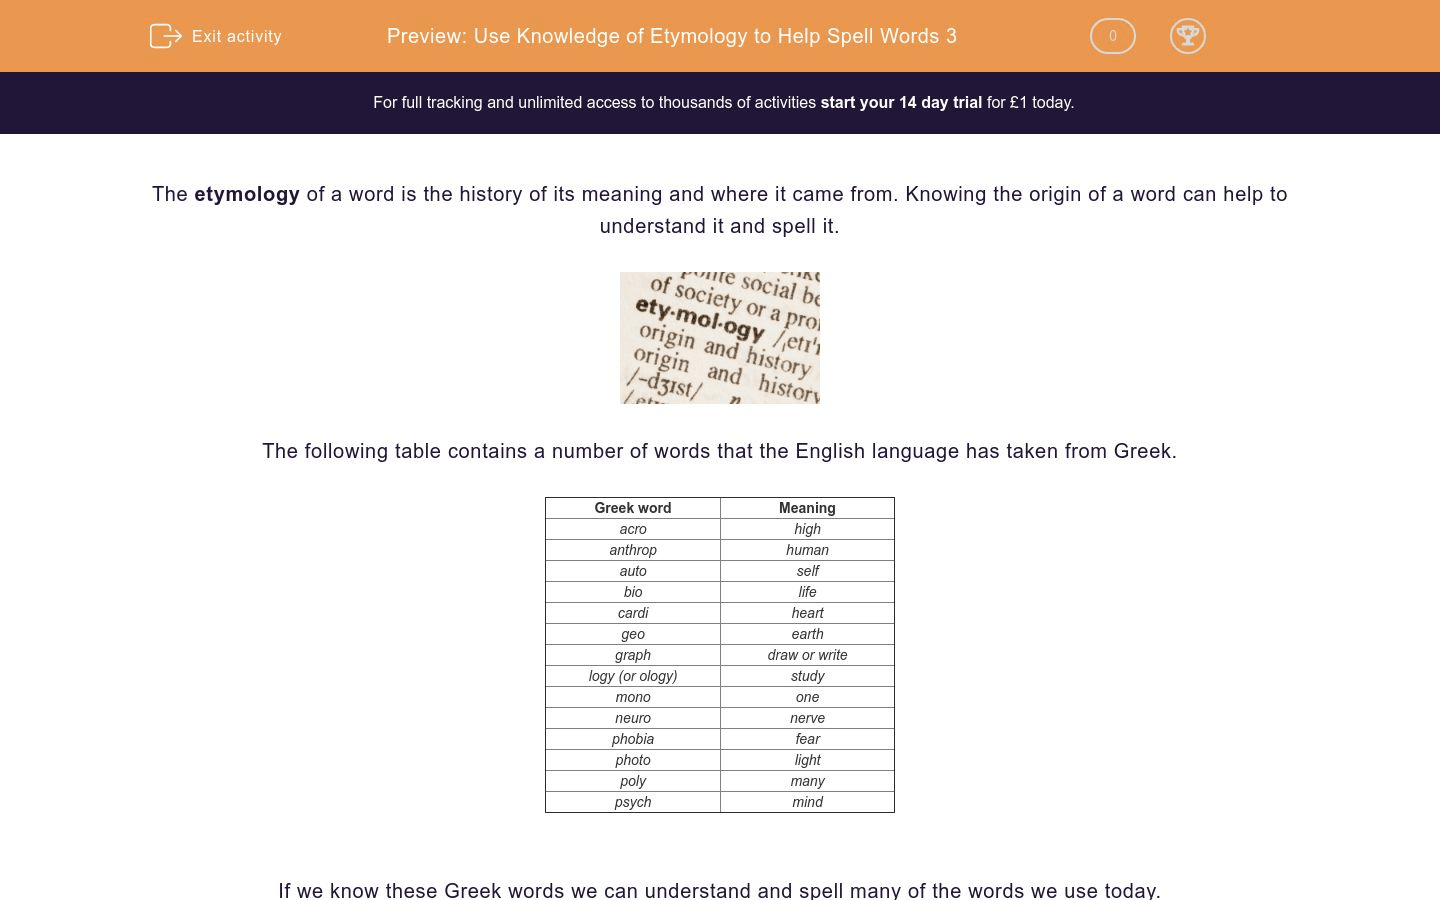 hight resolution of Use Knowledge of Etymology to Help Spell Words 3 Worksheet - EdPlace